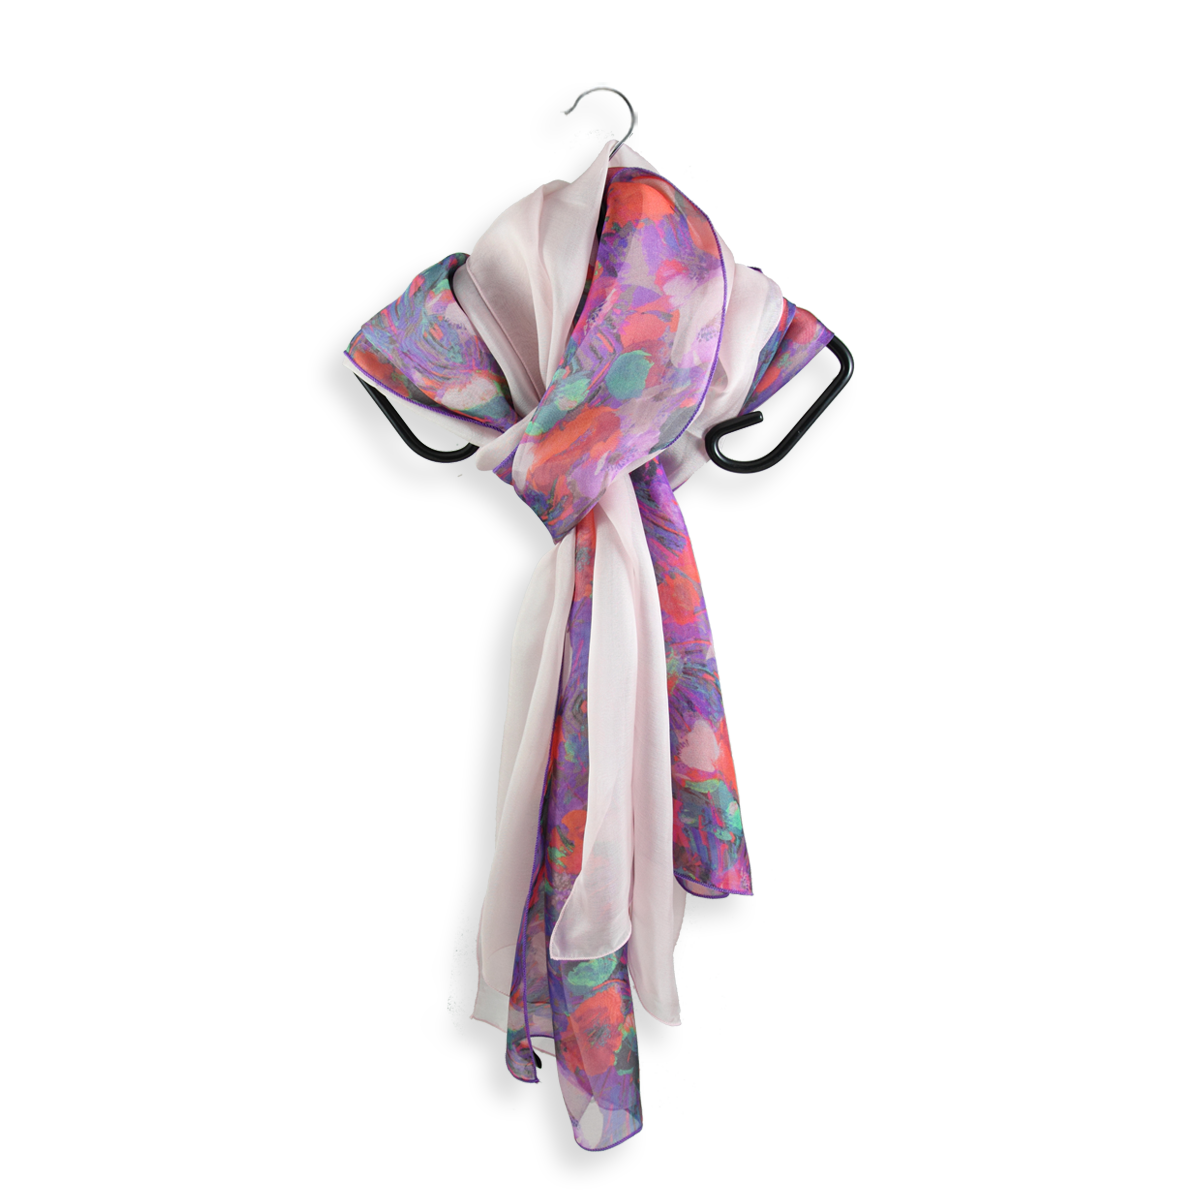 07c6b986e61 Women's scarves in natural silk. red fireworks style print and pink ...